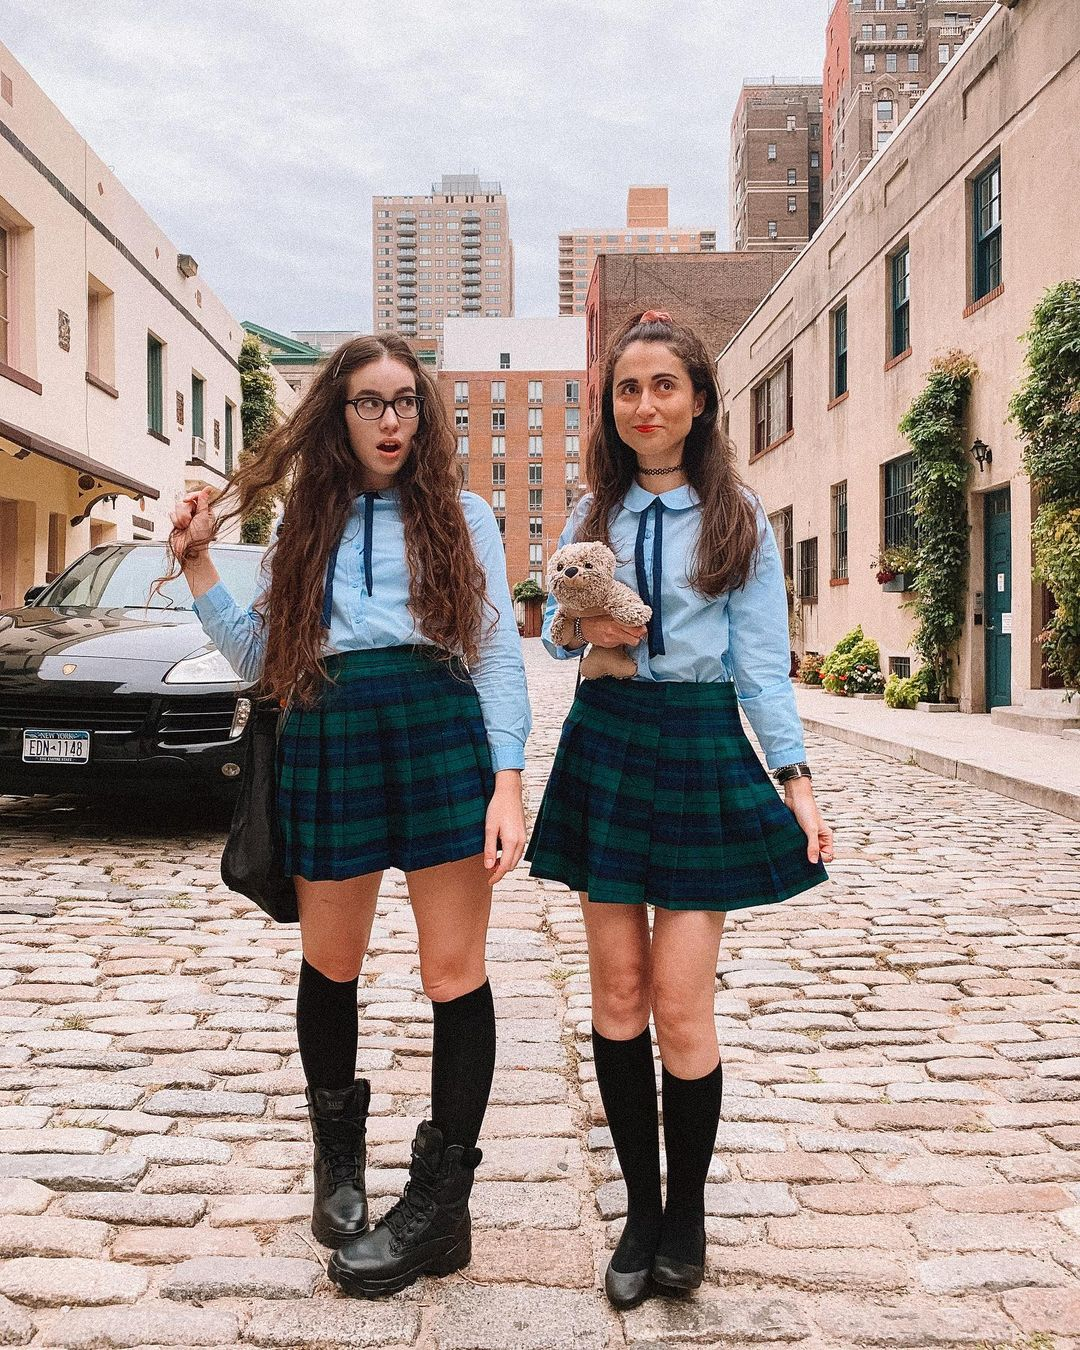 Unique and cute best friend Halloween costumes for 2